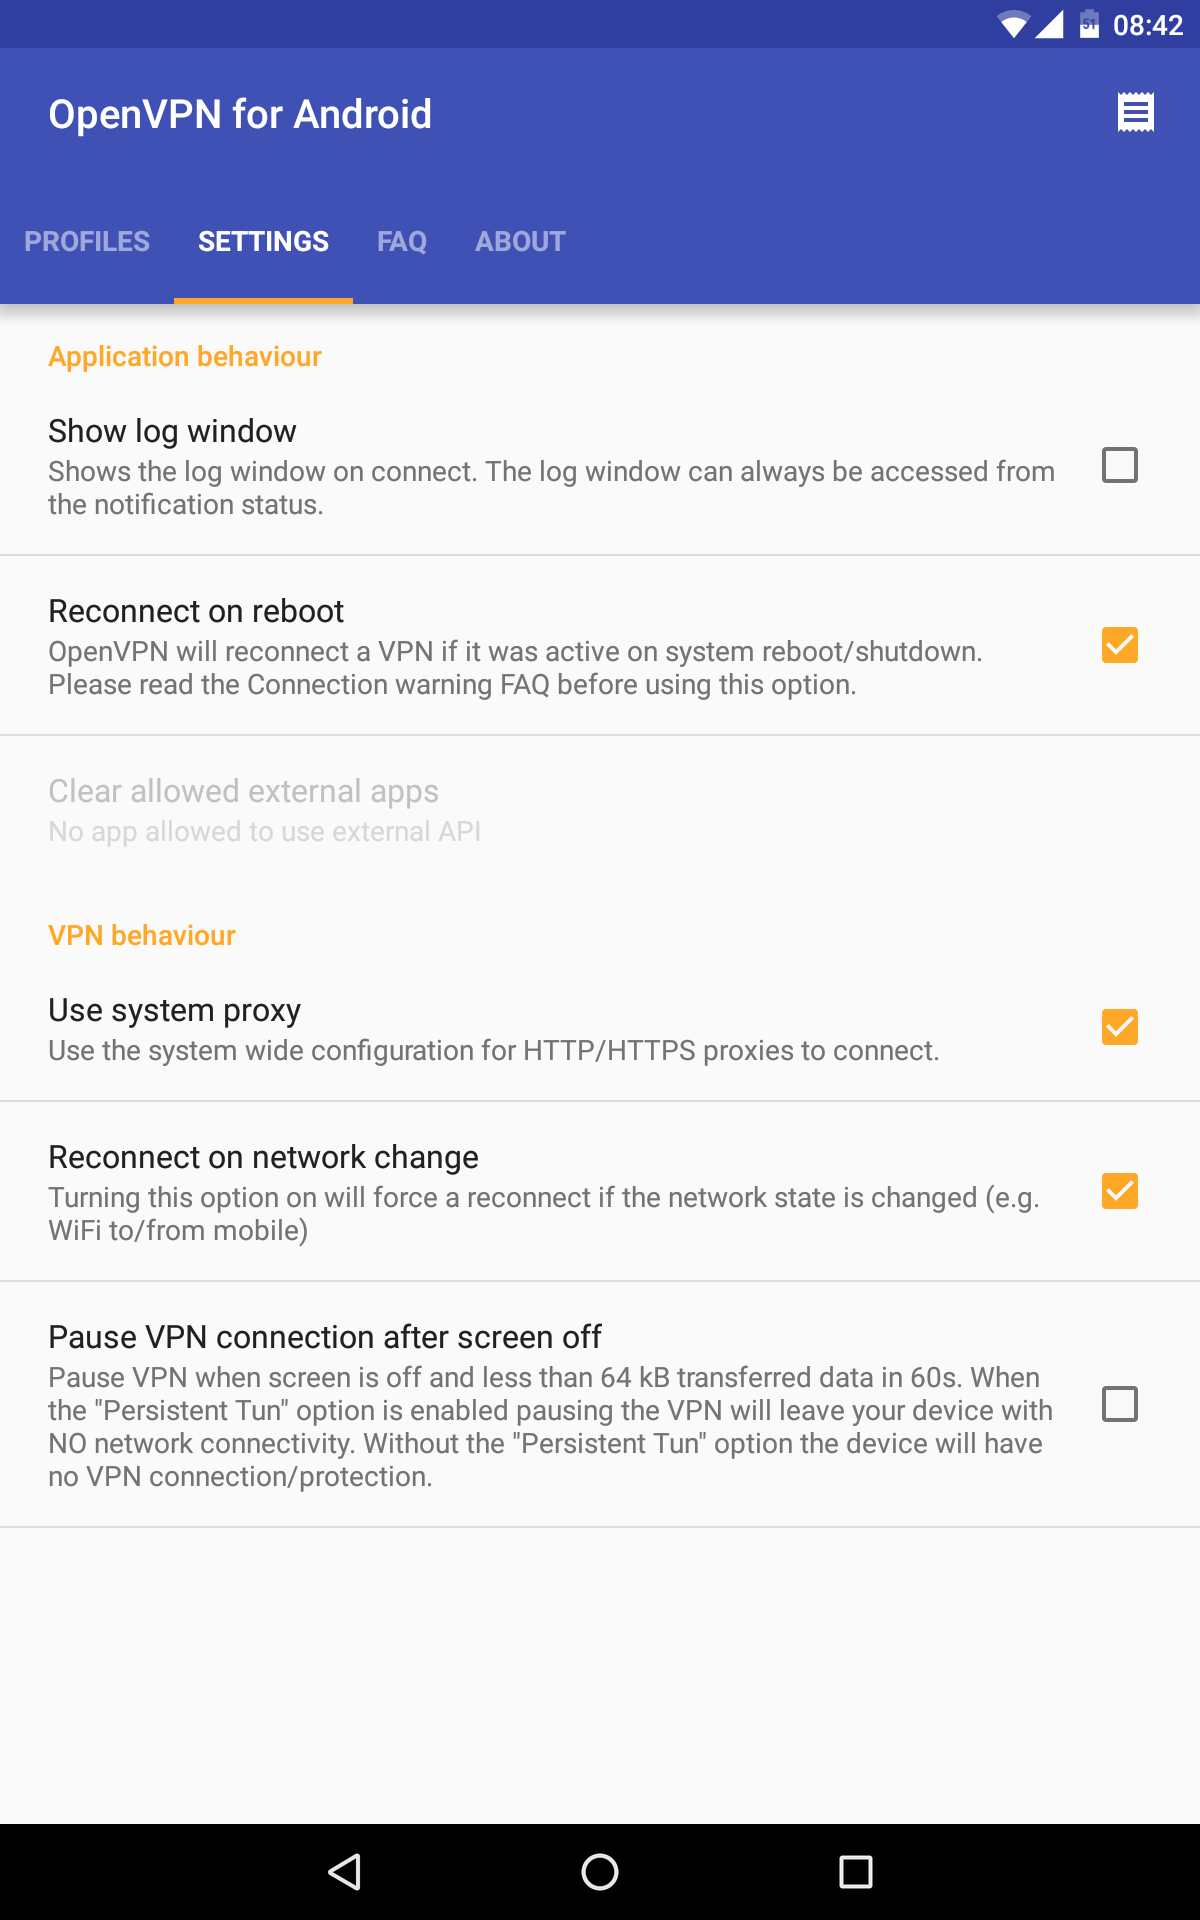 OpenVPN for Android